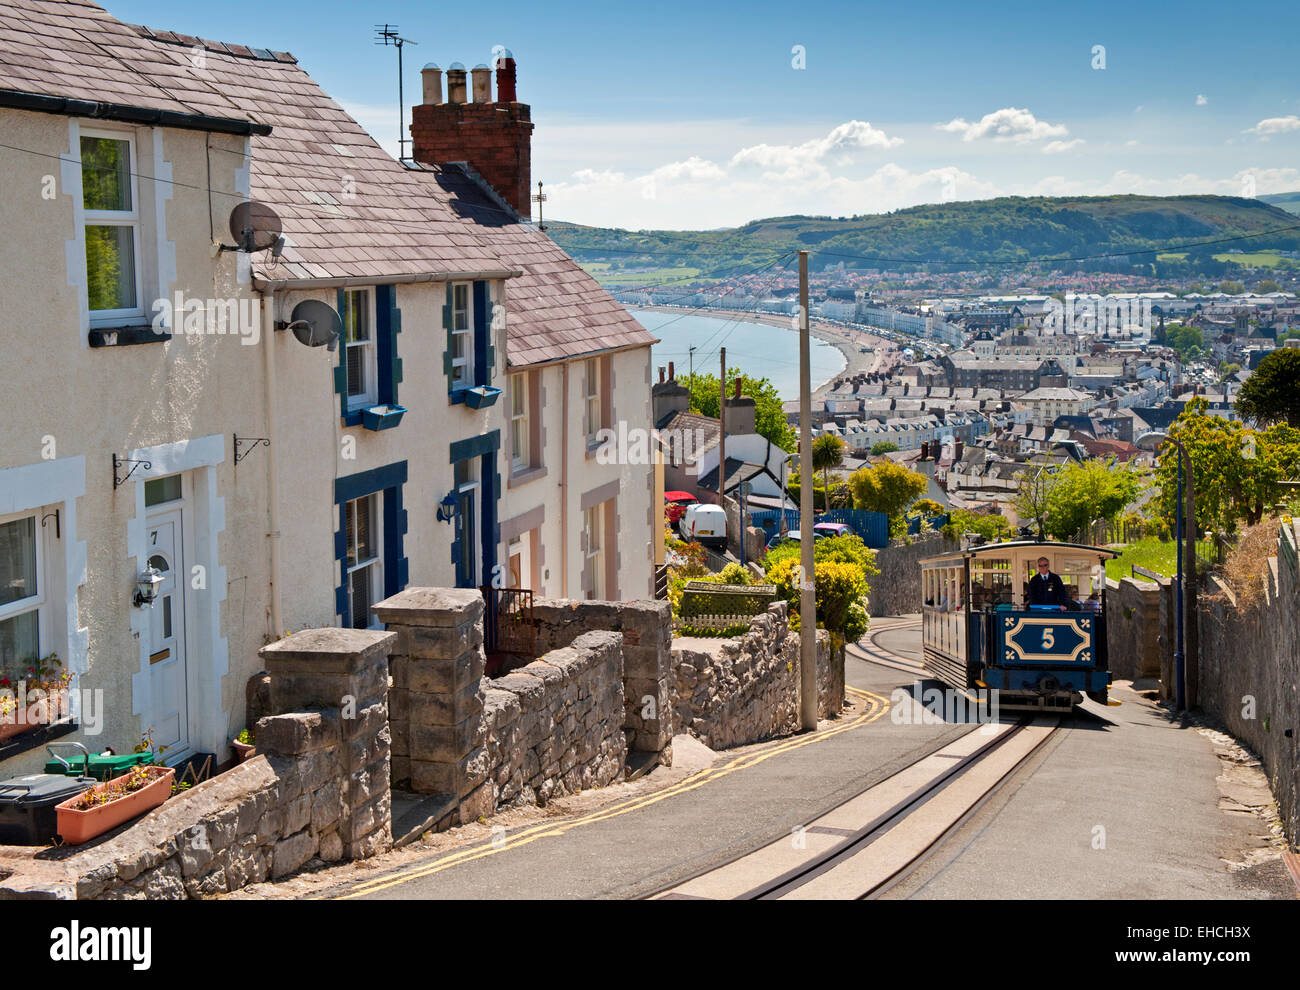 Great Orme Tramway Tram Climbing the Hills above Llandudno Seafront, Llandudno, North Wales, UK Stock Photo